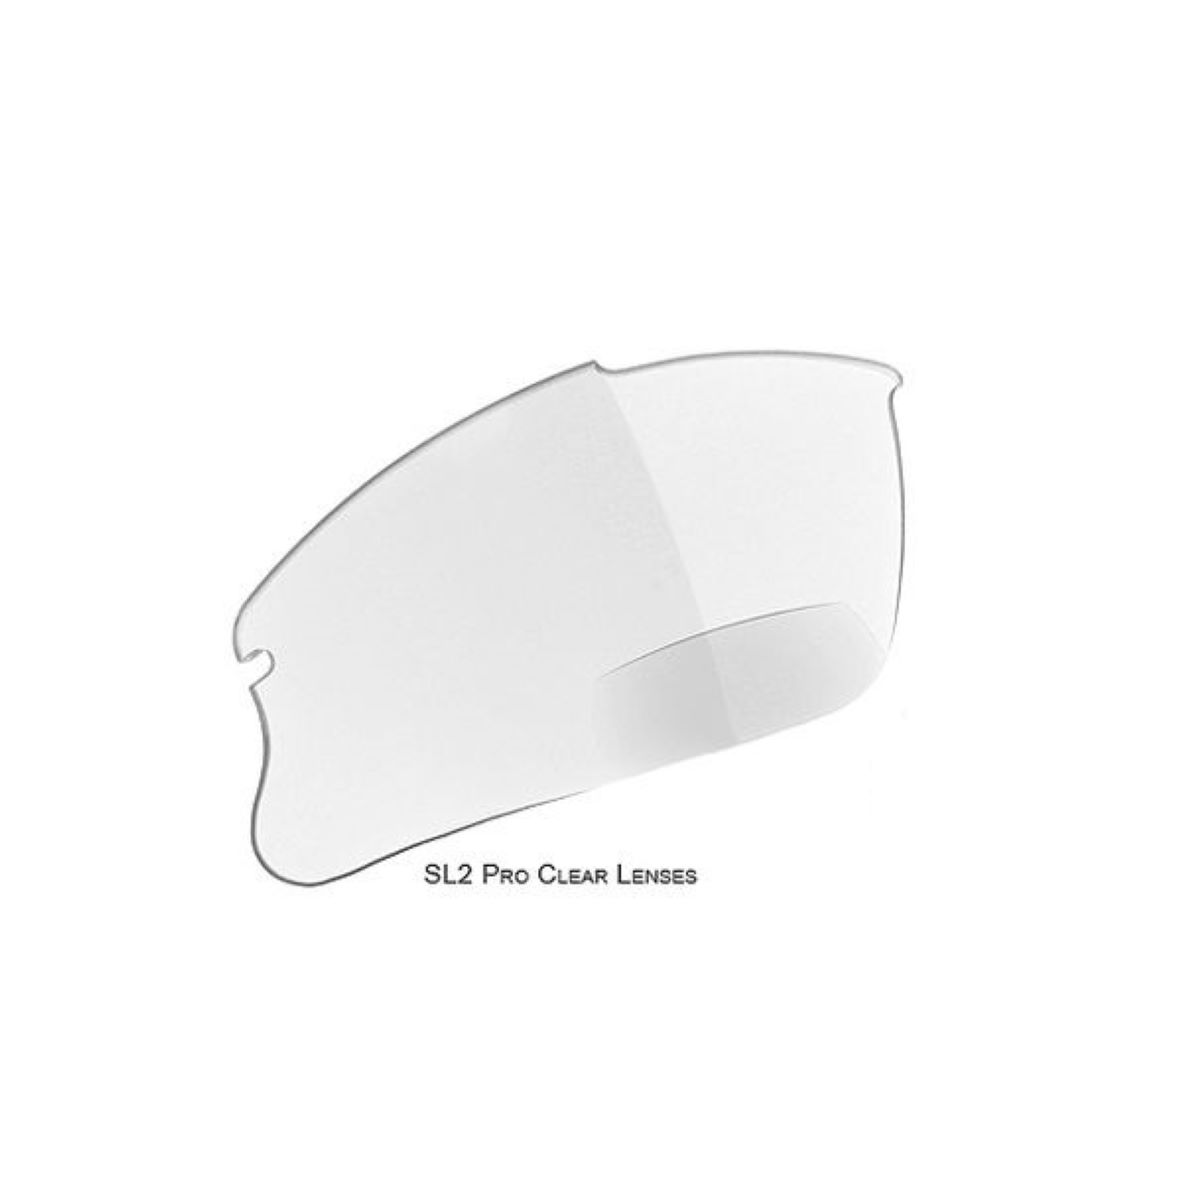 Dual Eyewear Replacement Lenses - SL2 Pro